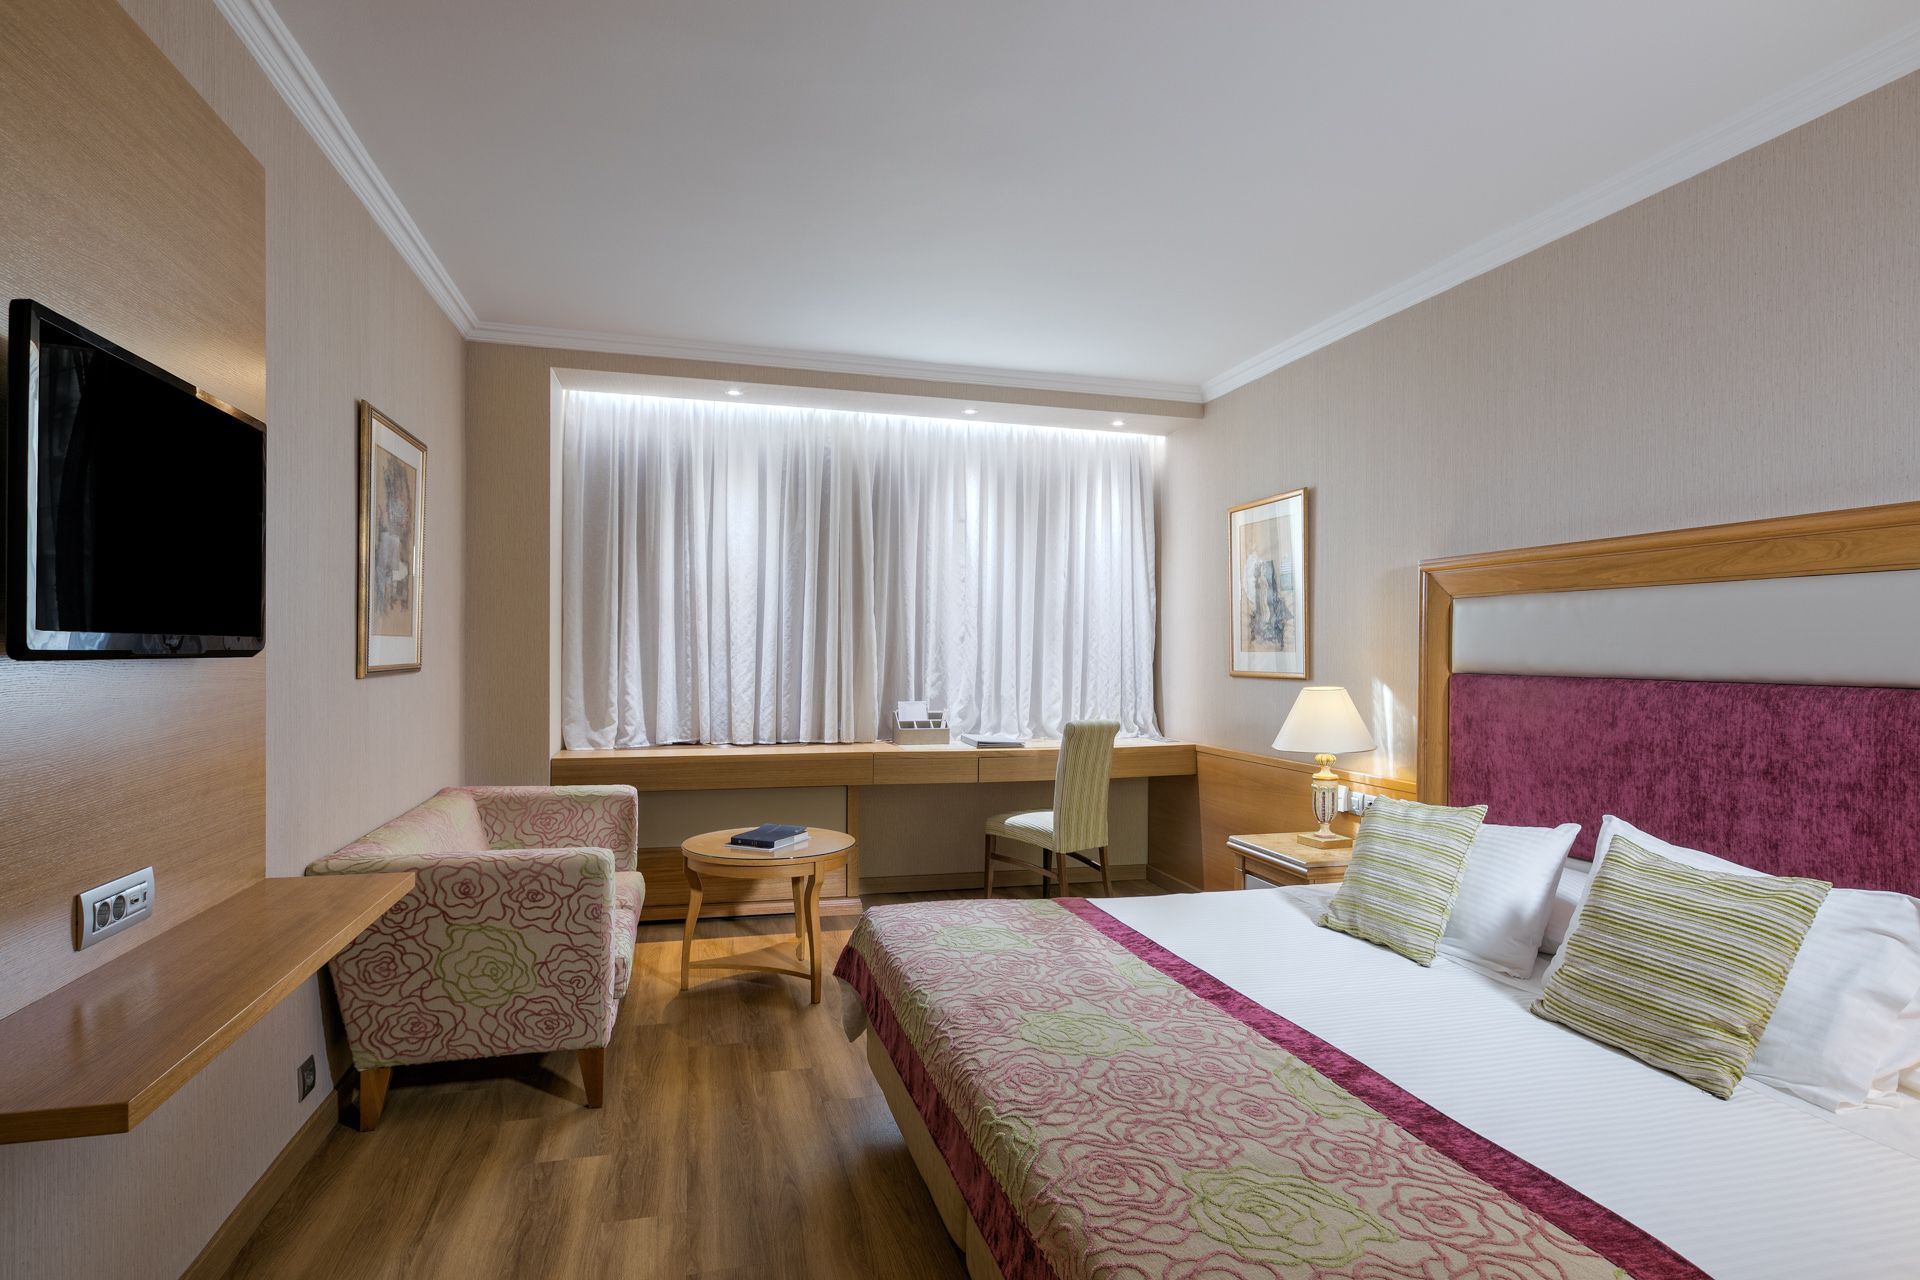 divani caravel hotel deluxe. Standard Room - Divani Caravel Hotel, Collection, Athens, Greece, Luxury Hotel | Book Online Deluxe